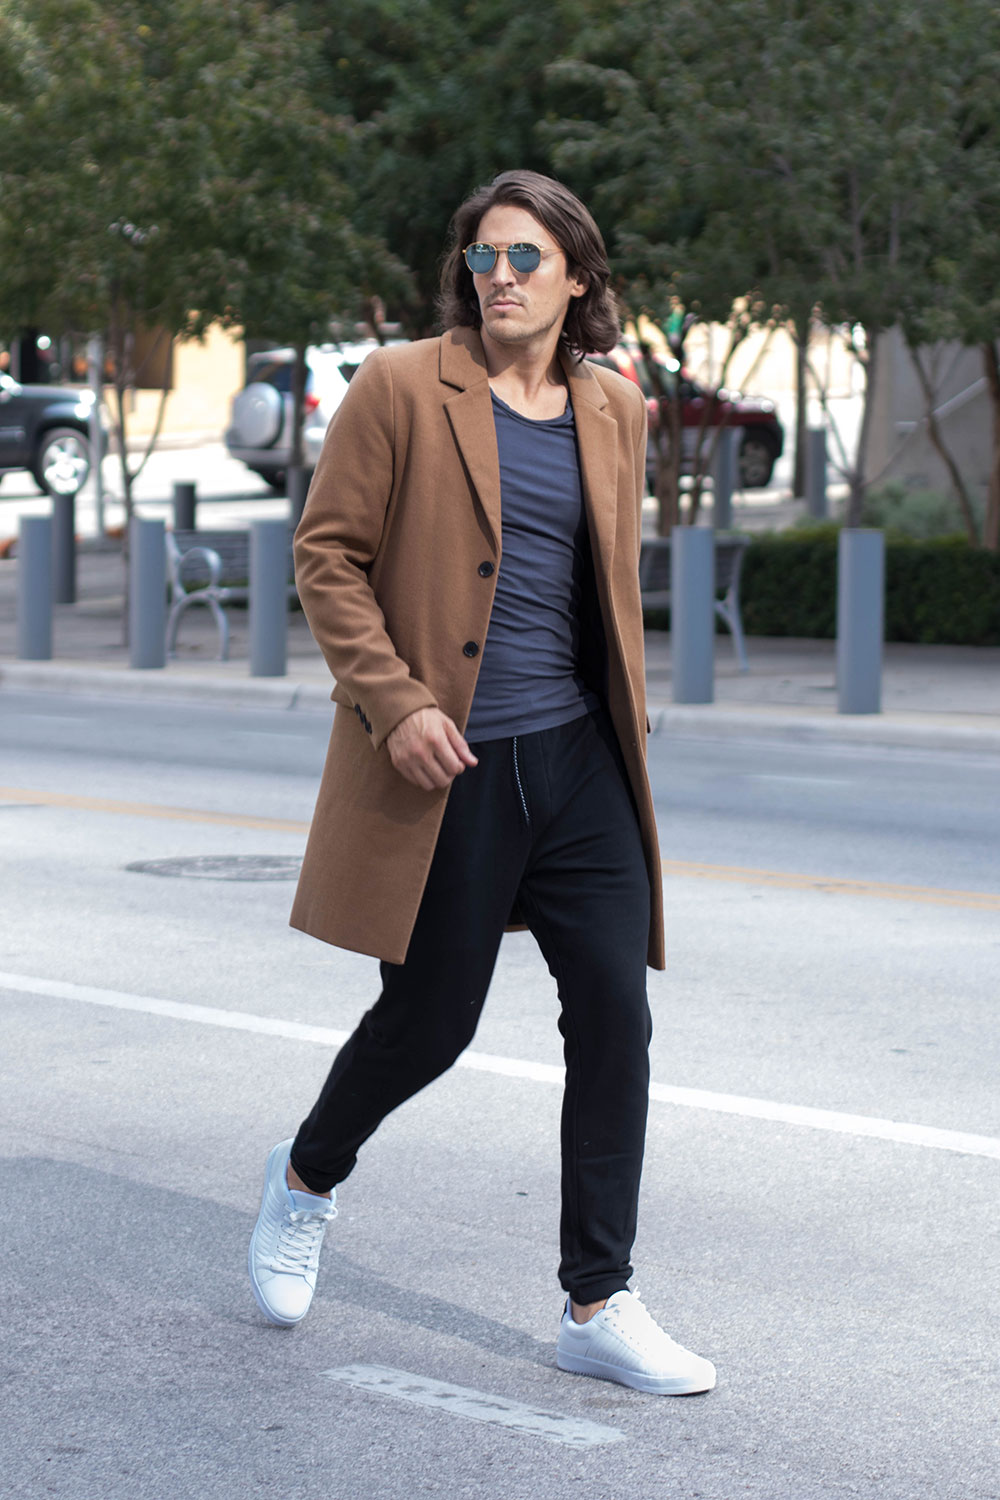 Mens Camel Overcoat with Grey Tee, Black Joggers and White Sneakers 2